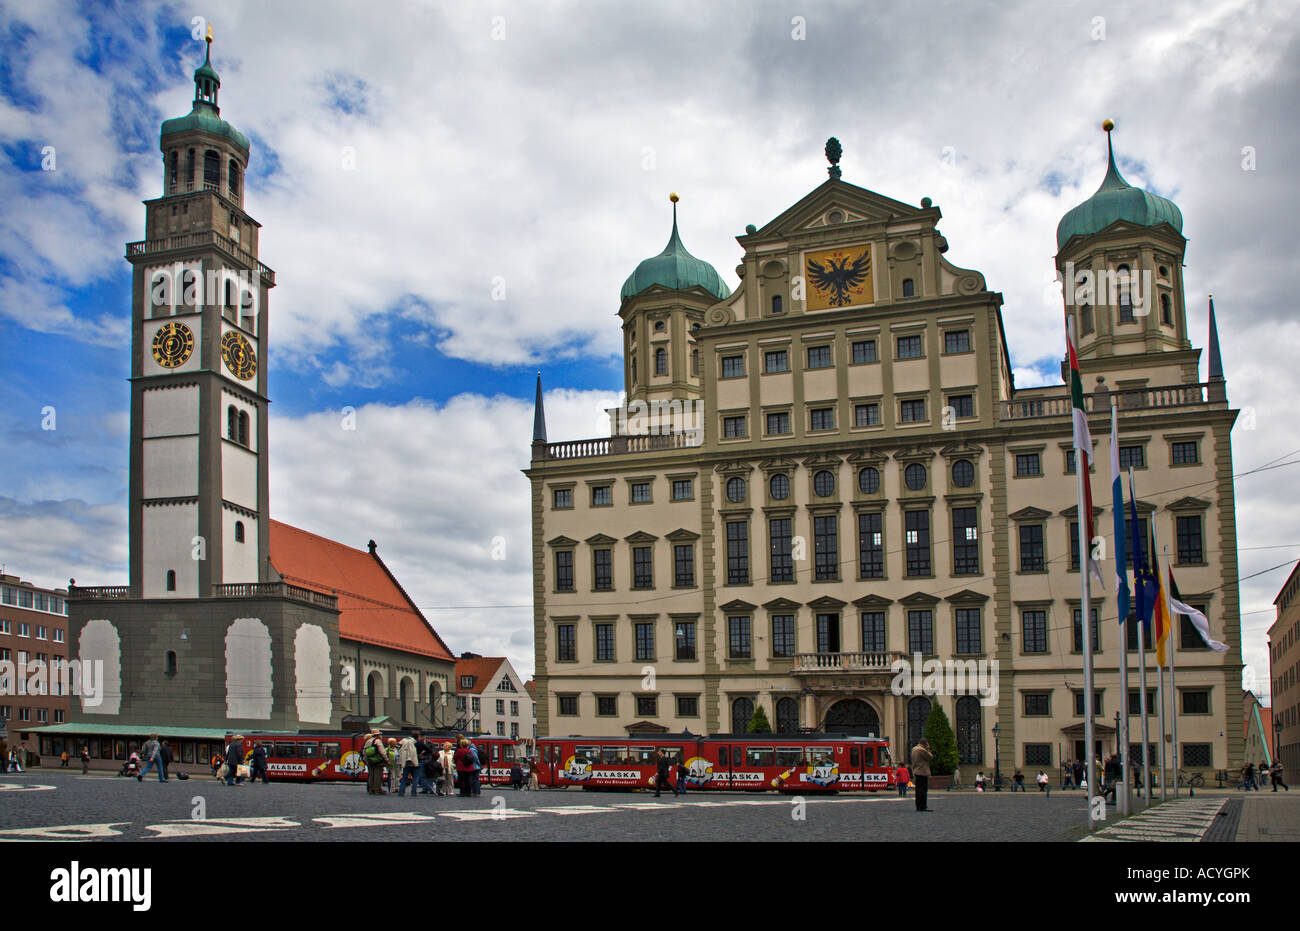 perlach tower and town hall augsburg germany stock photo royalty free image 13255242 alamy. Black Bedroom Furniture Sets. Home Design Ideas